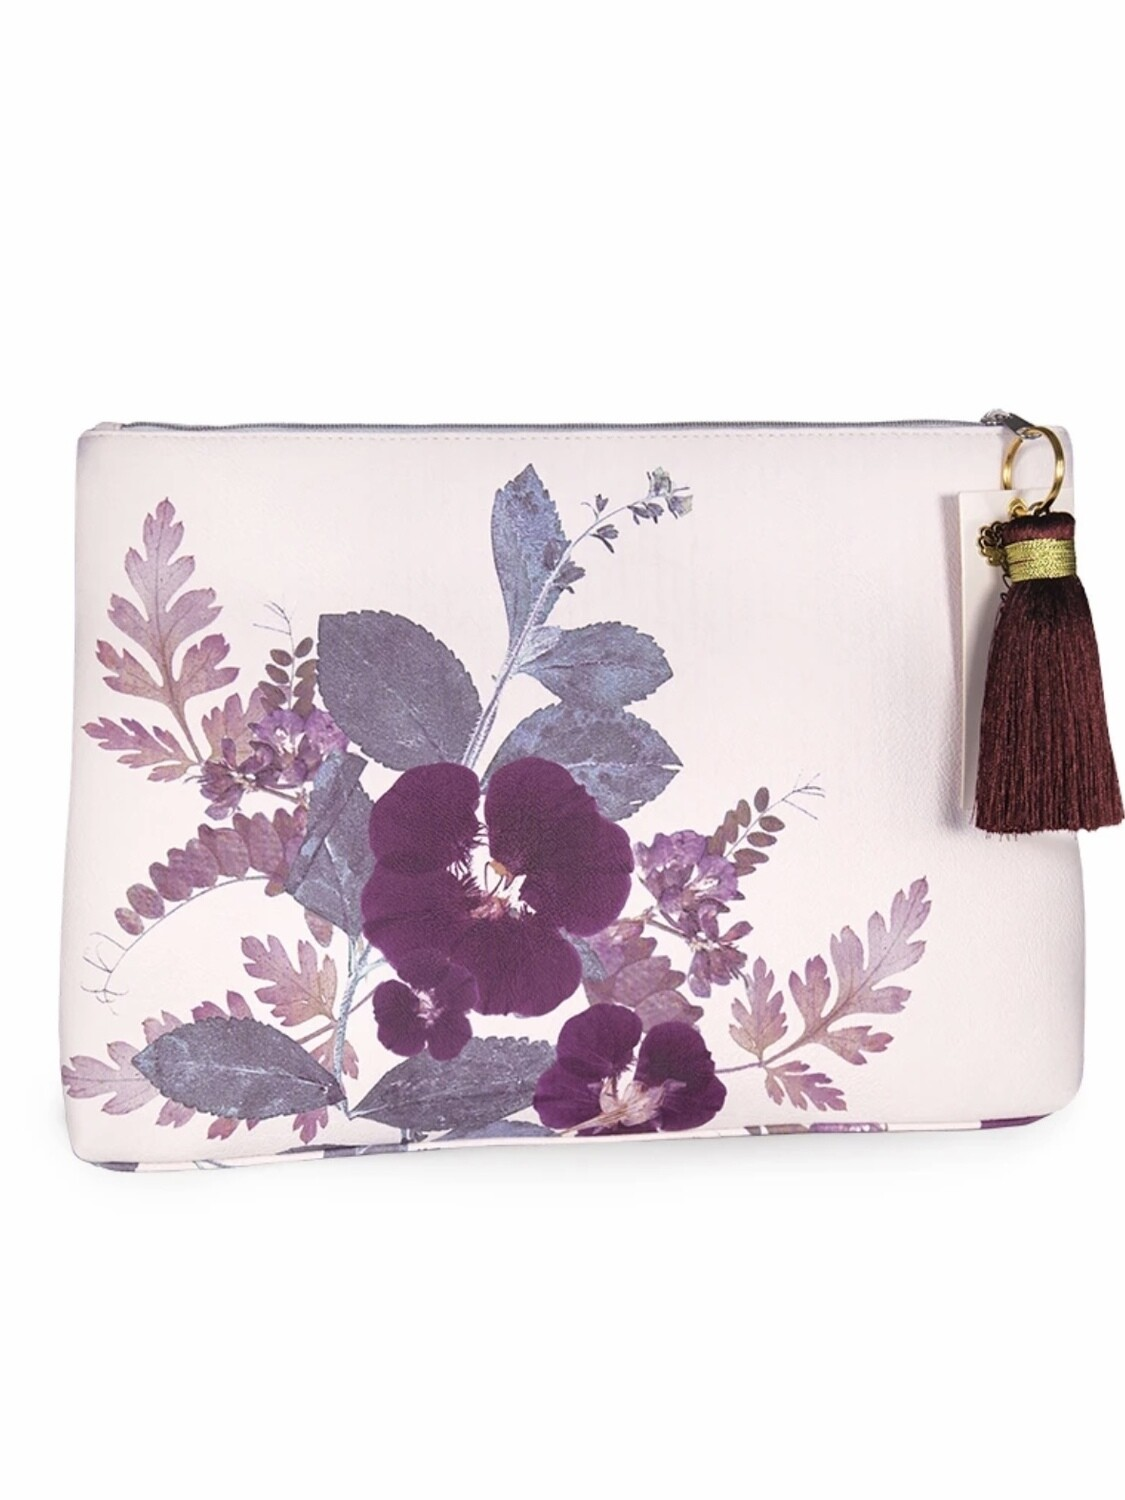 Plum Leaves Large Pouch - PAB19